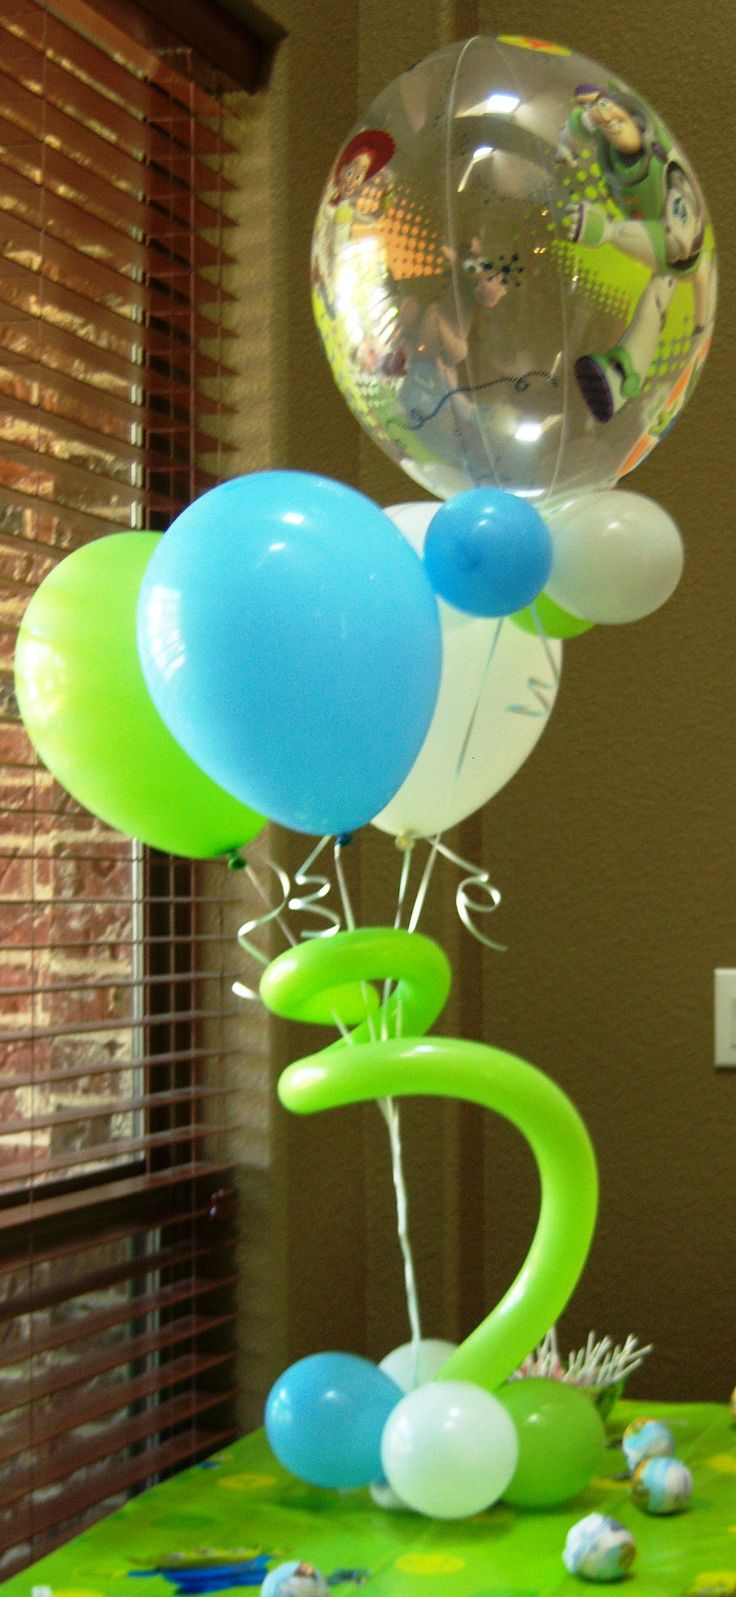 54 best images about boy birthday balloons decor on pinterest for Balloons arrangement decoration